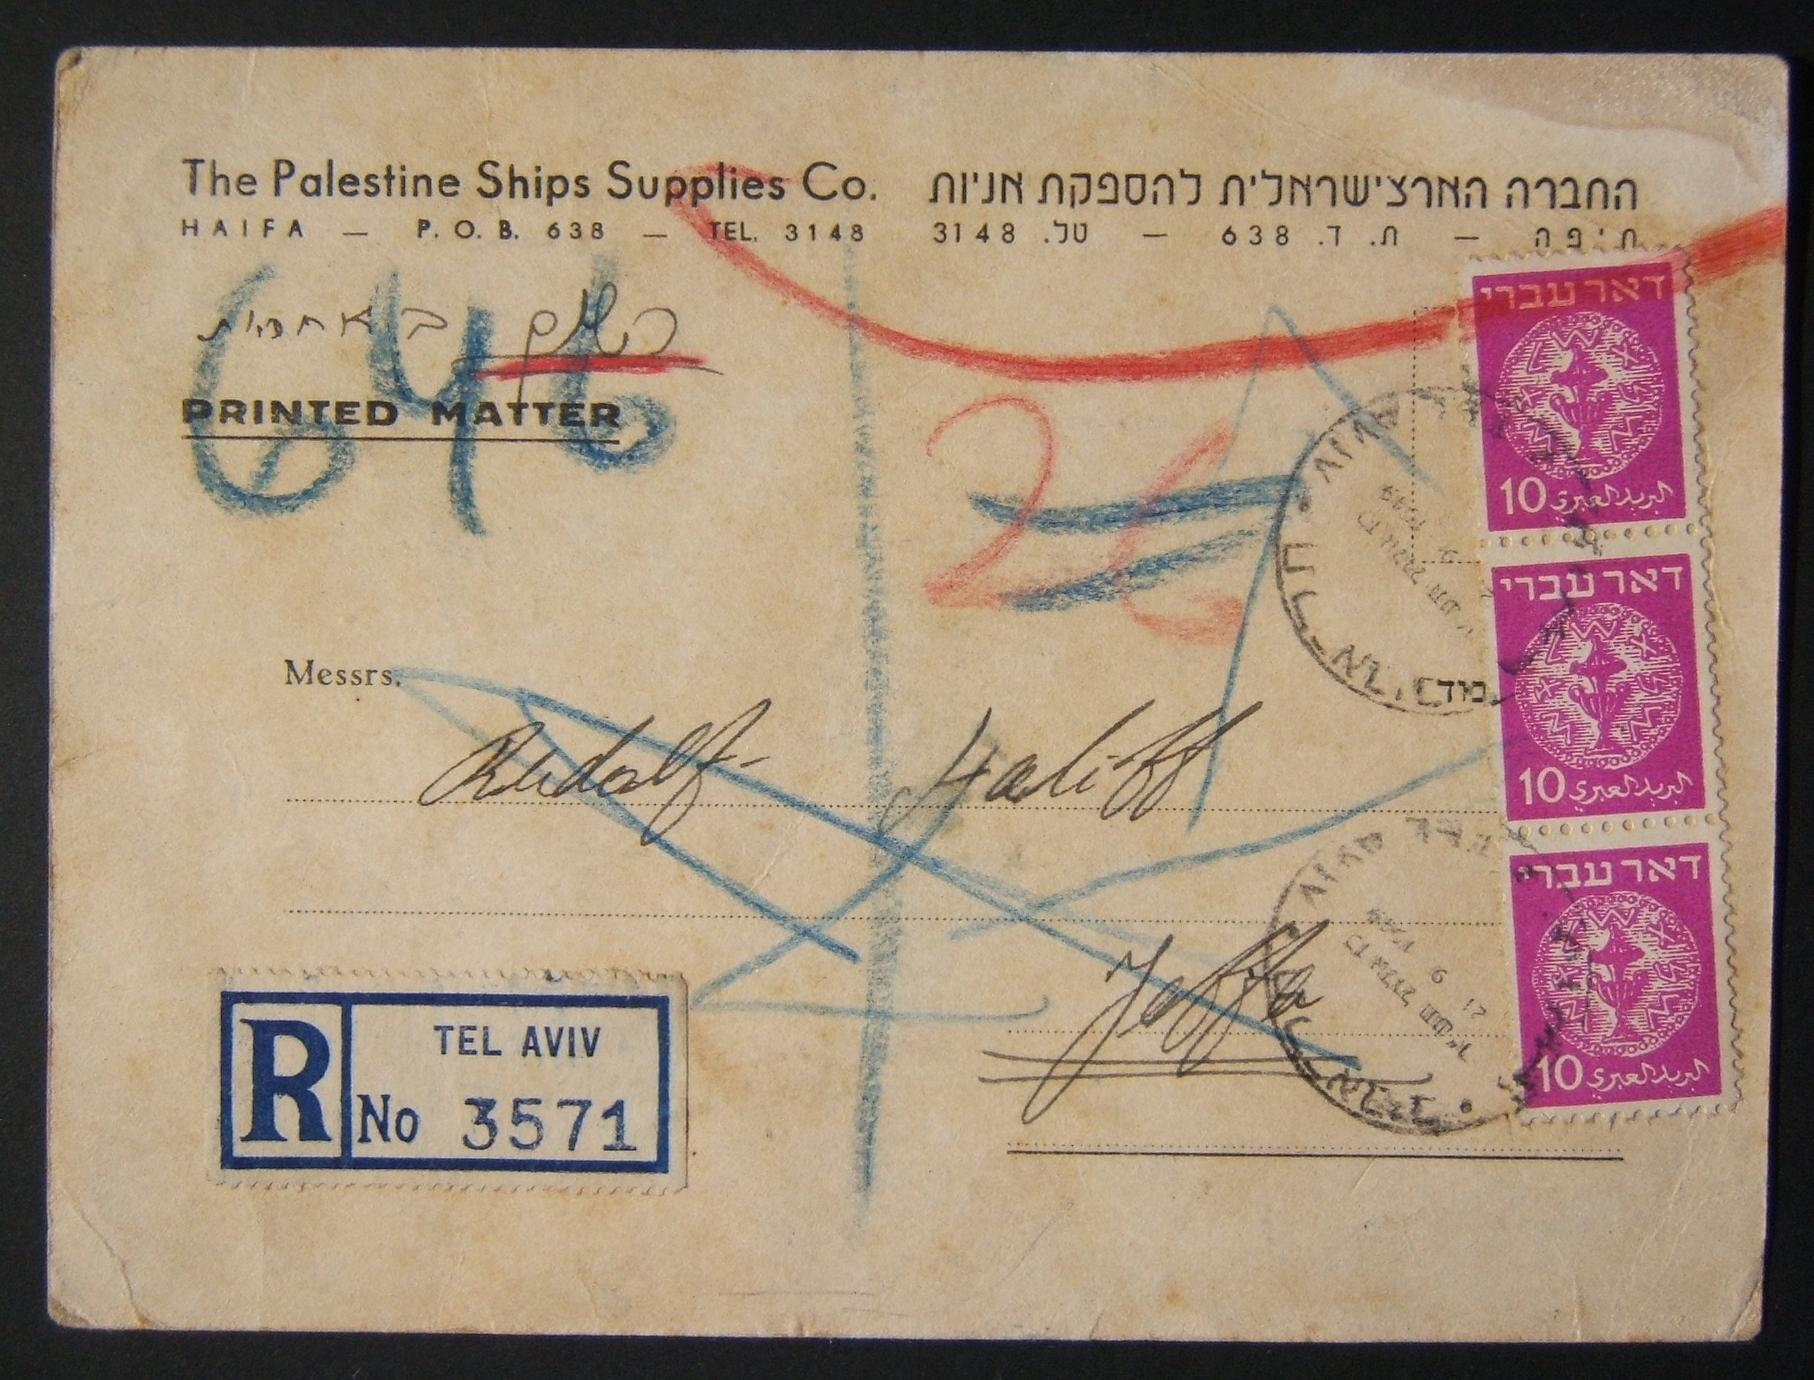 Doar Ivri PO's, rates & routes: 21-9-1949 registered commercial printed matter pc ex TLV to HAIFA franked 30pr at the DO-2 period rate (5pr pm rate + 25pr registration) using verti